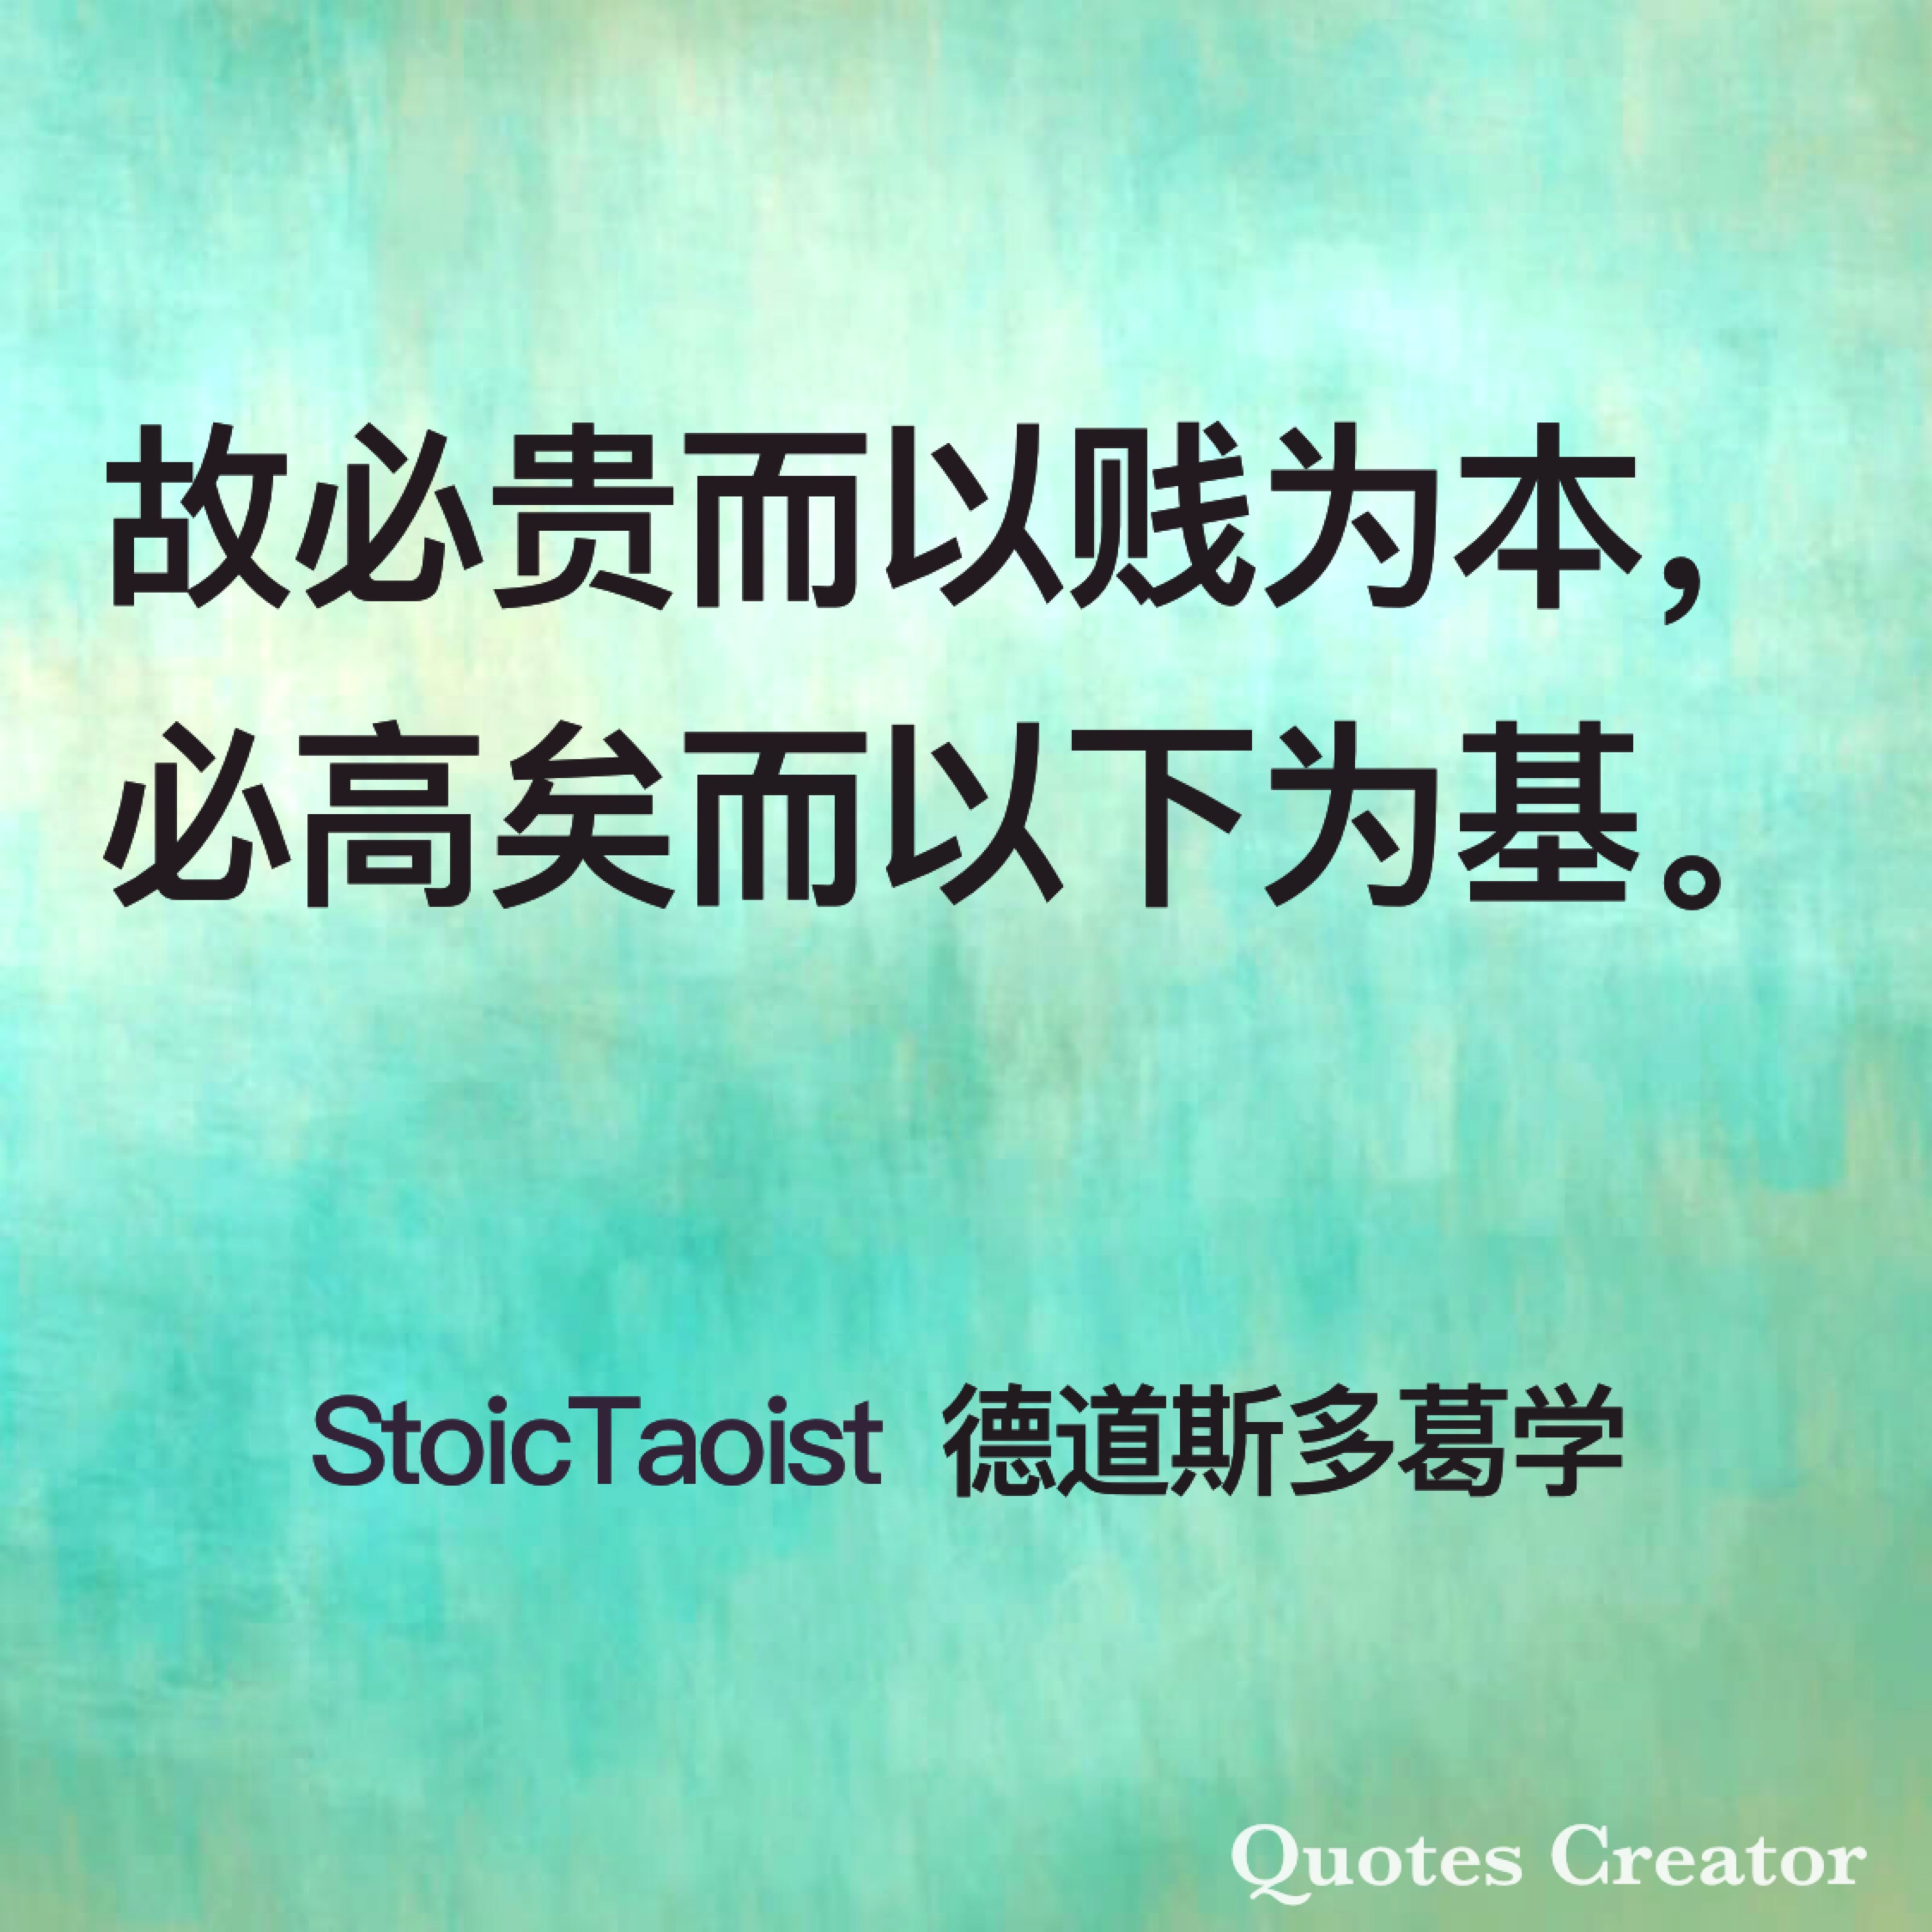 Things Fall Apart Chapter 10 Quotes: Stoic Taoism